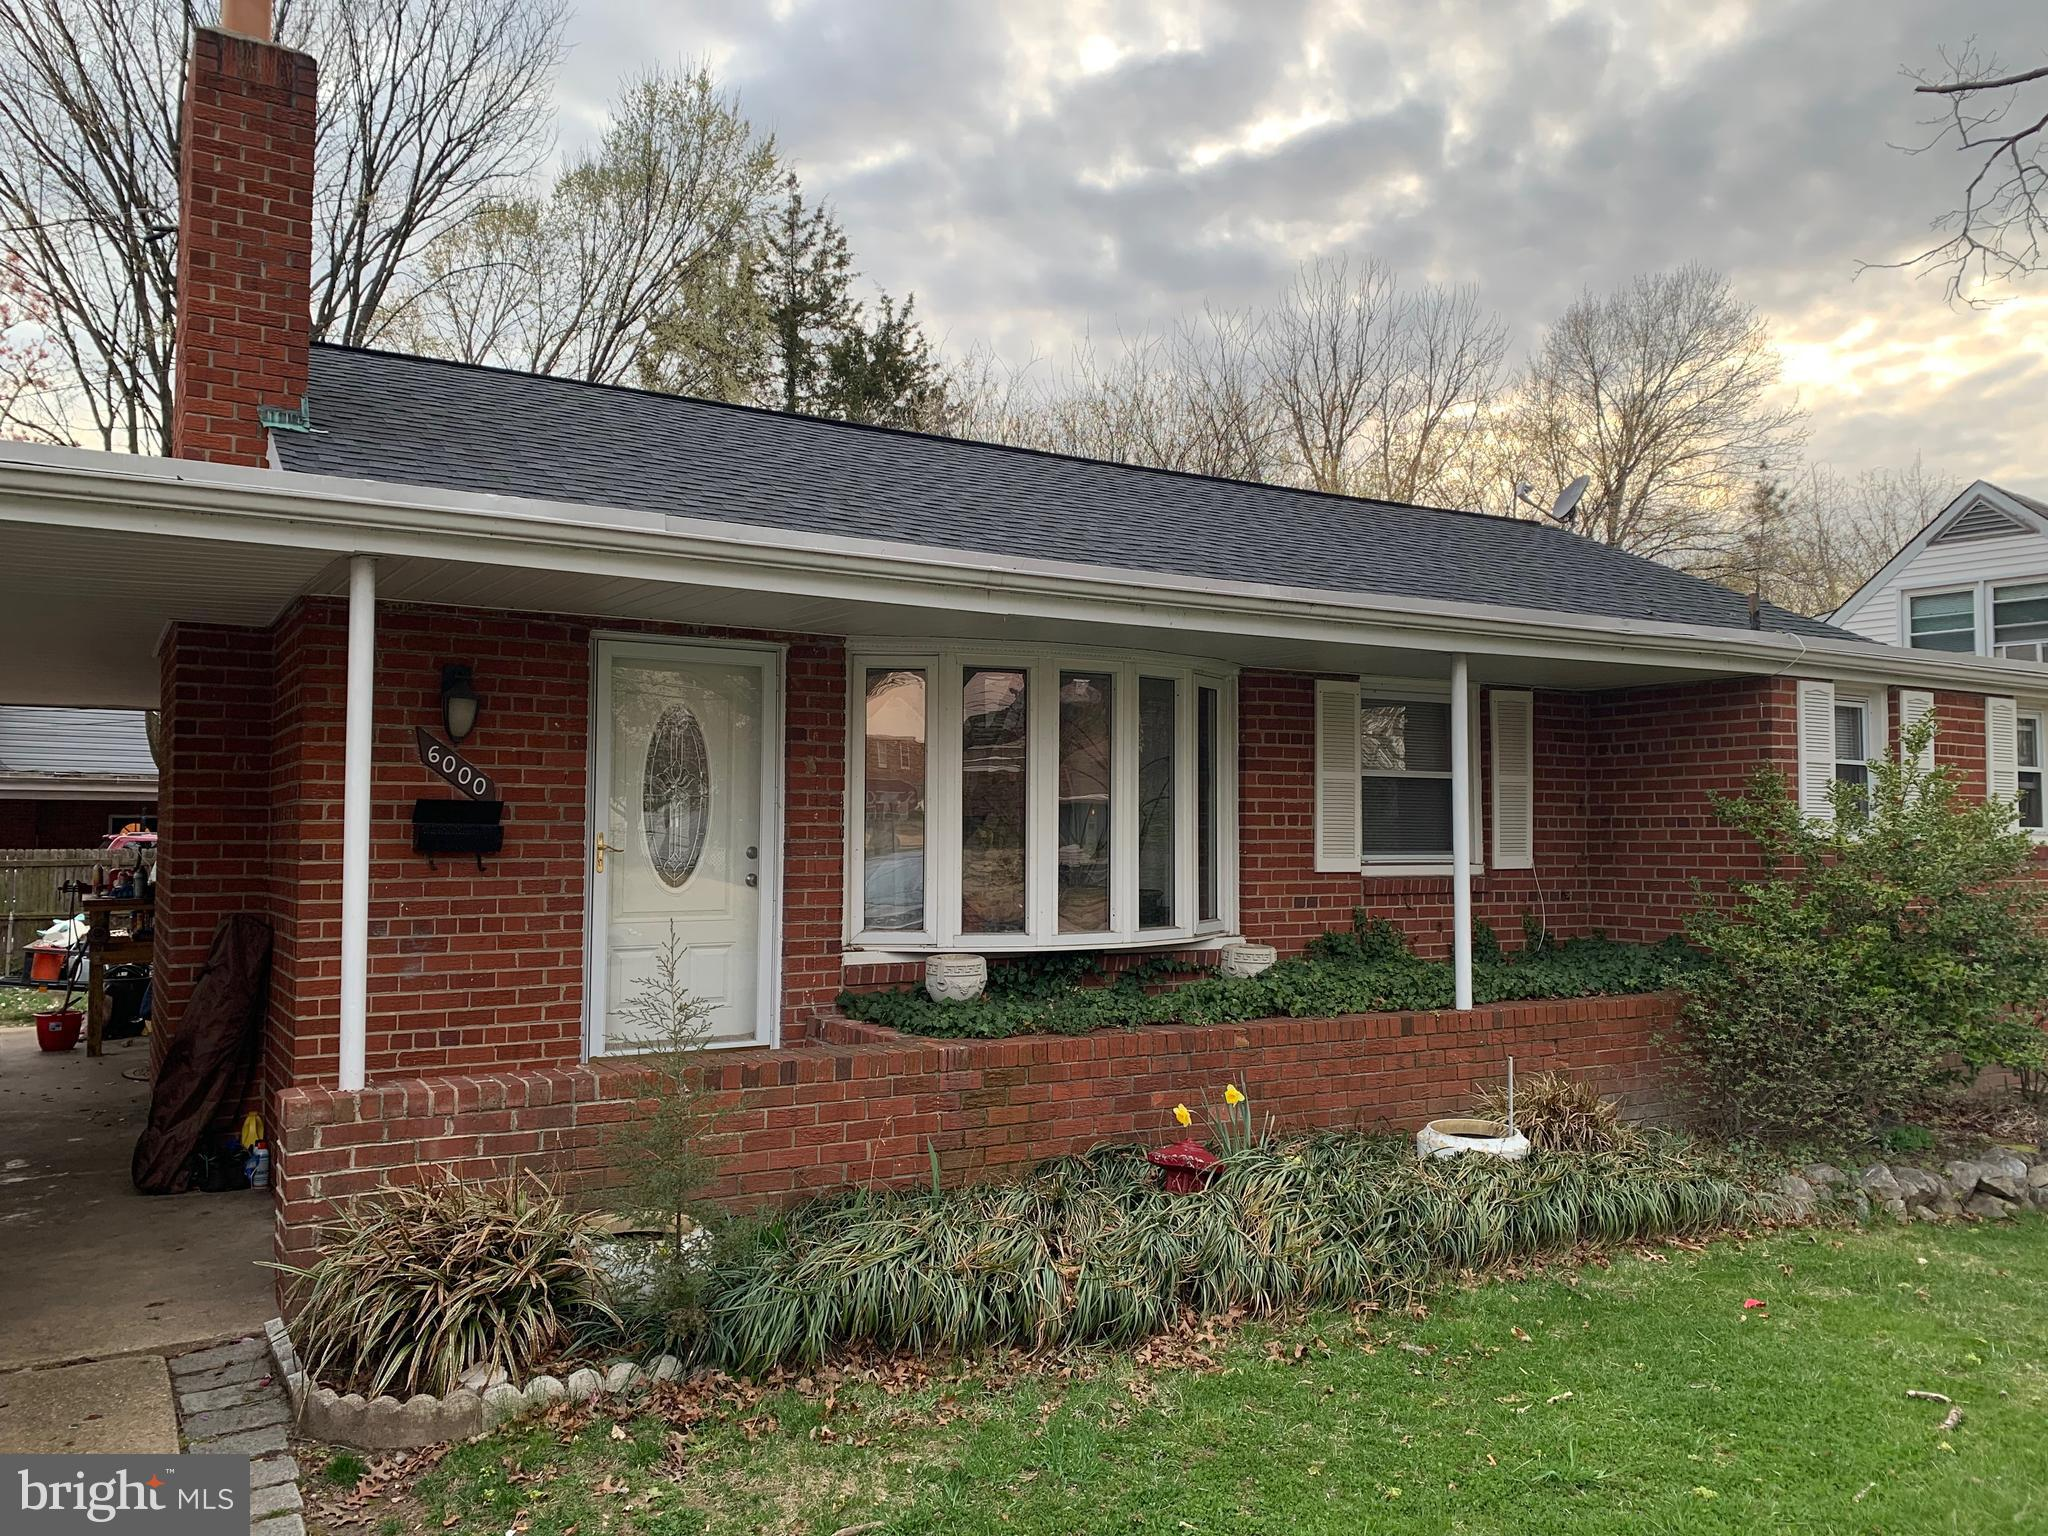 6000 85TH PLACE, NEW CARROLLTON, MD 20784